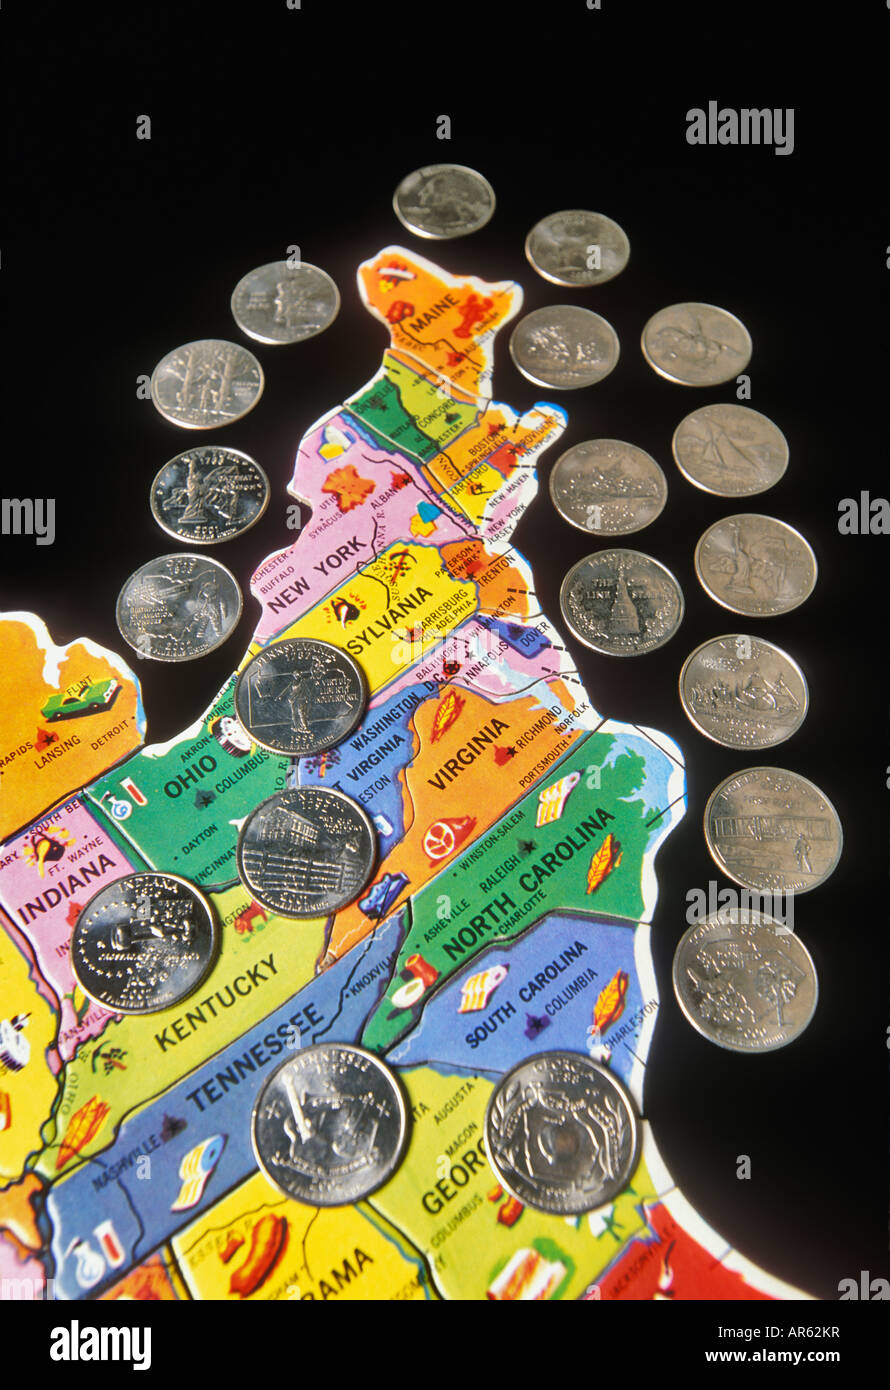 State Quarters for the Eastern United States Placed on Childrens ...